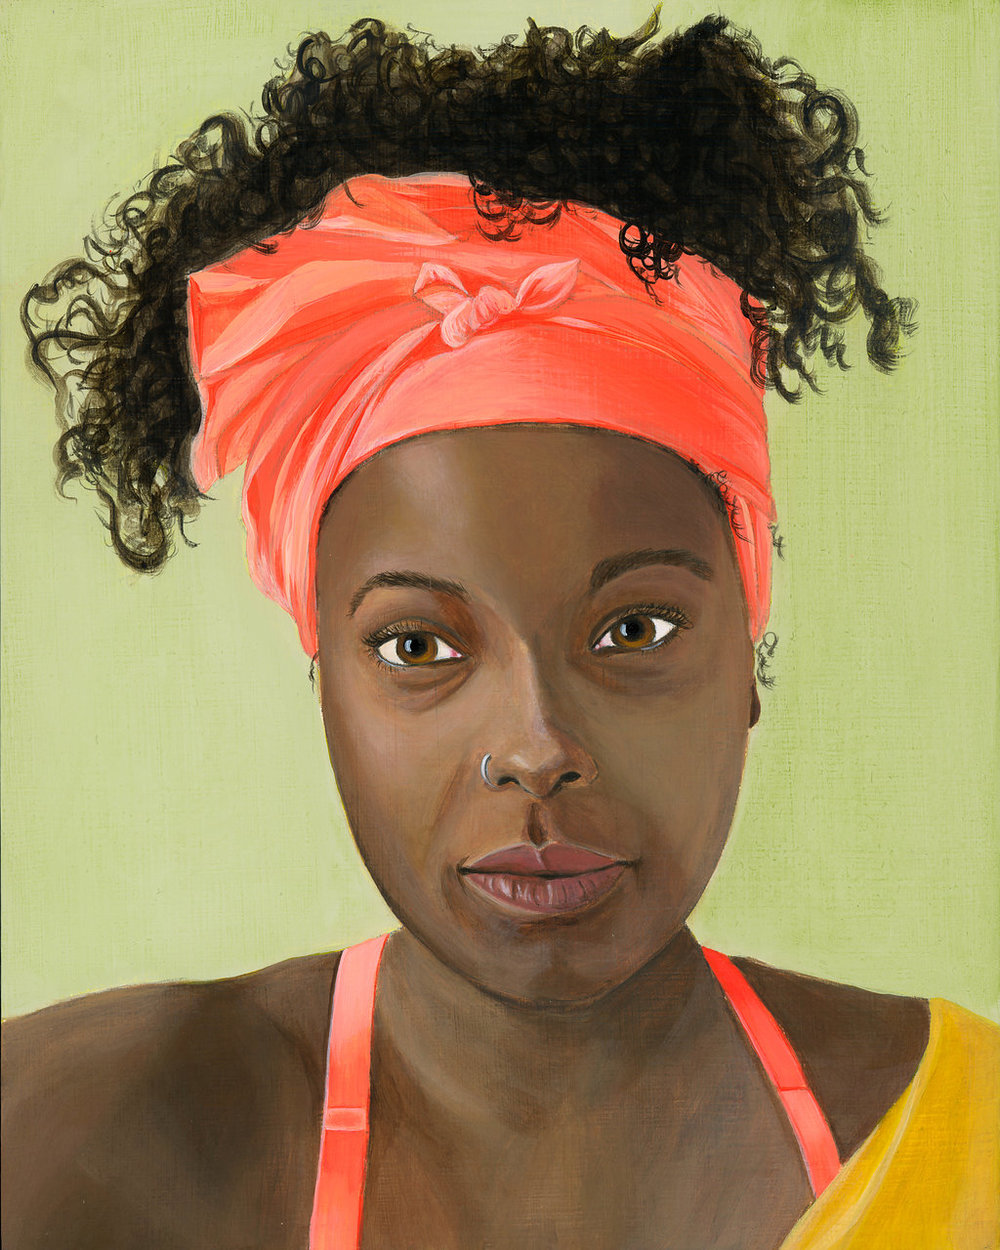 African American woman with pink head wrap - Curious Darling - J Danielle Wehunt